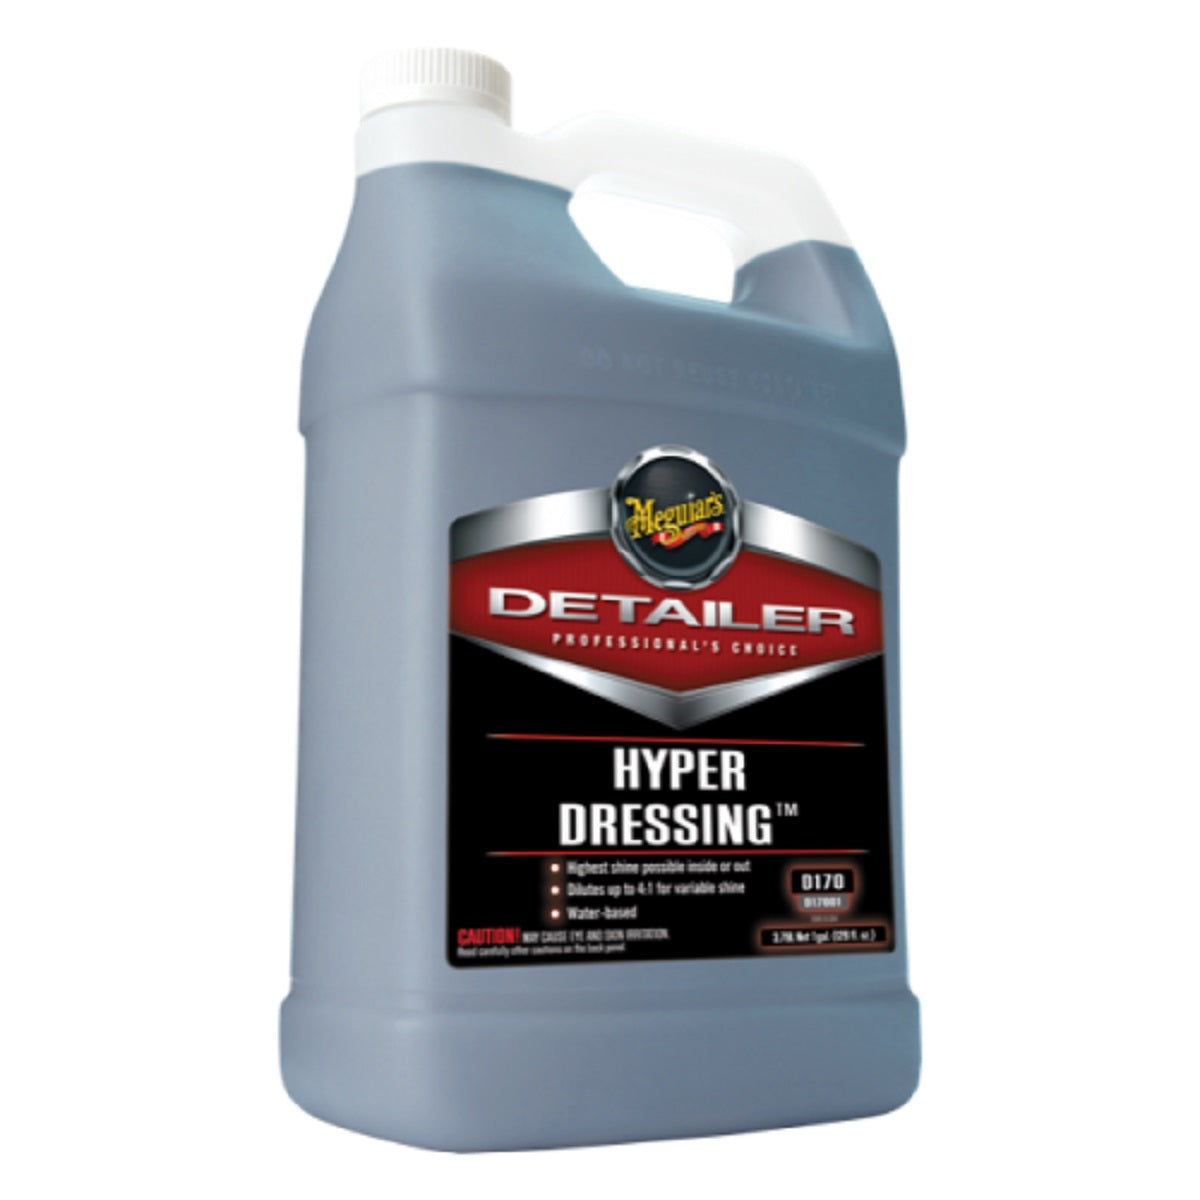 Car Detailing products | Car Detailing products on sale | meguiars hyper dressing on leather | meguiars all season dressing